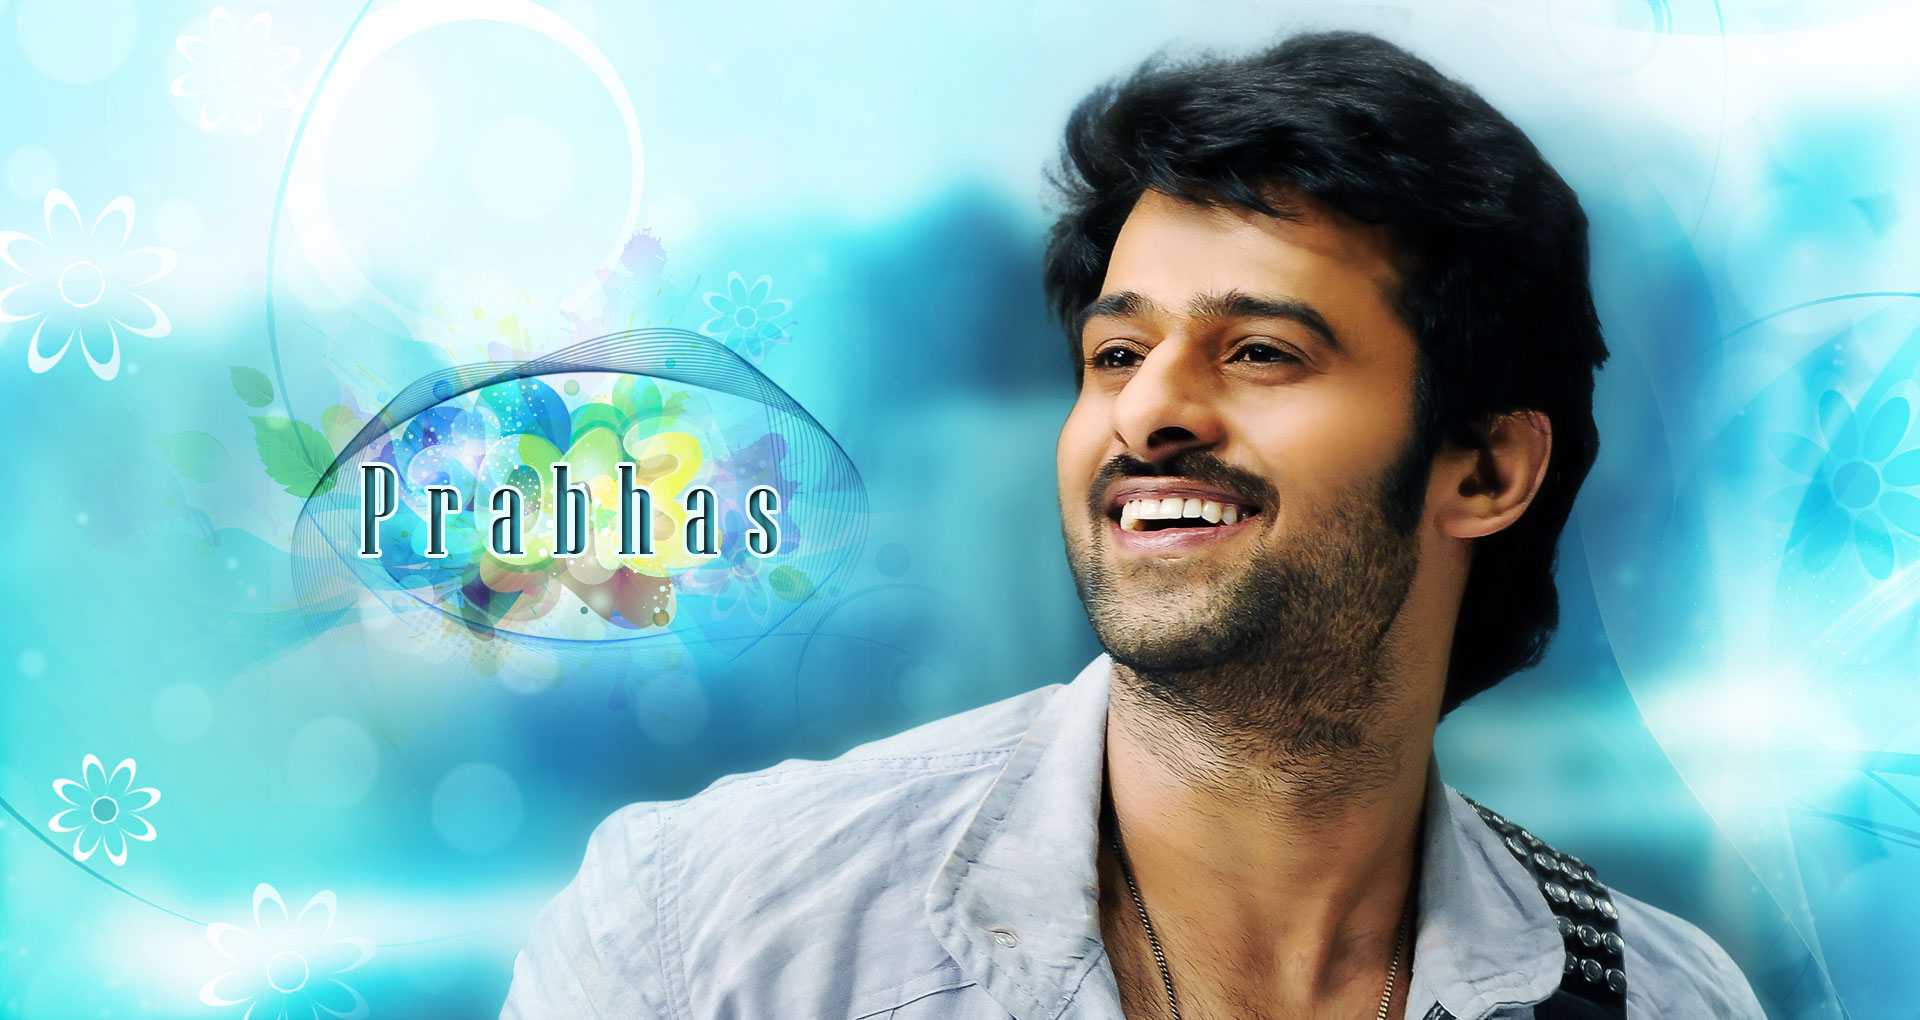 Prabhas Raju Hd Wallpaper Download Prabhas Lastest Photos For Download